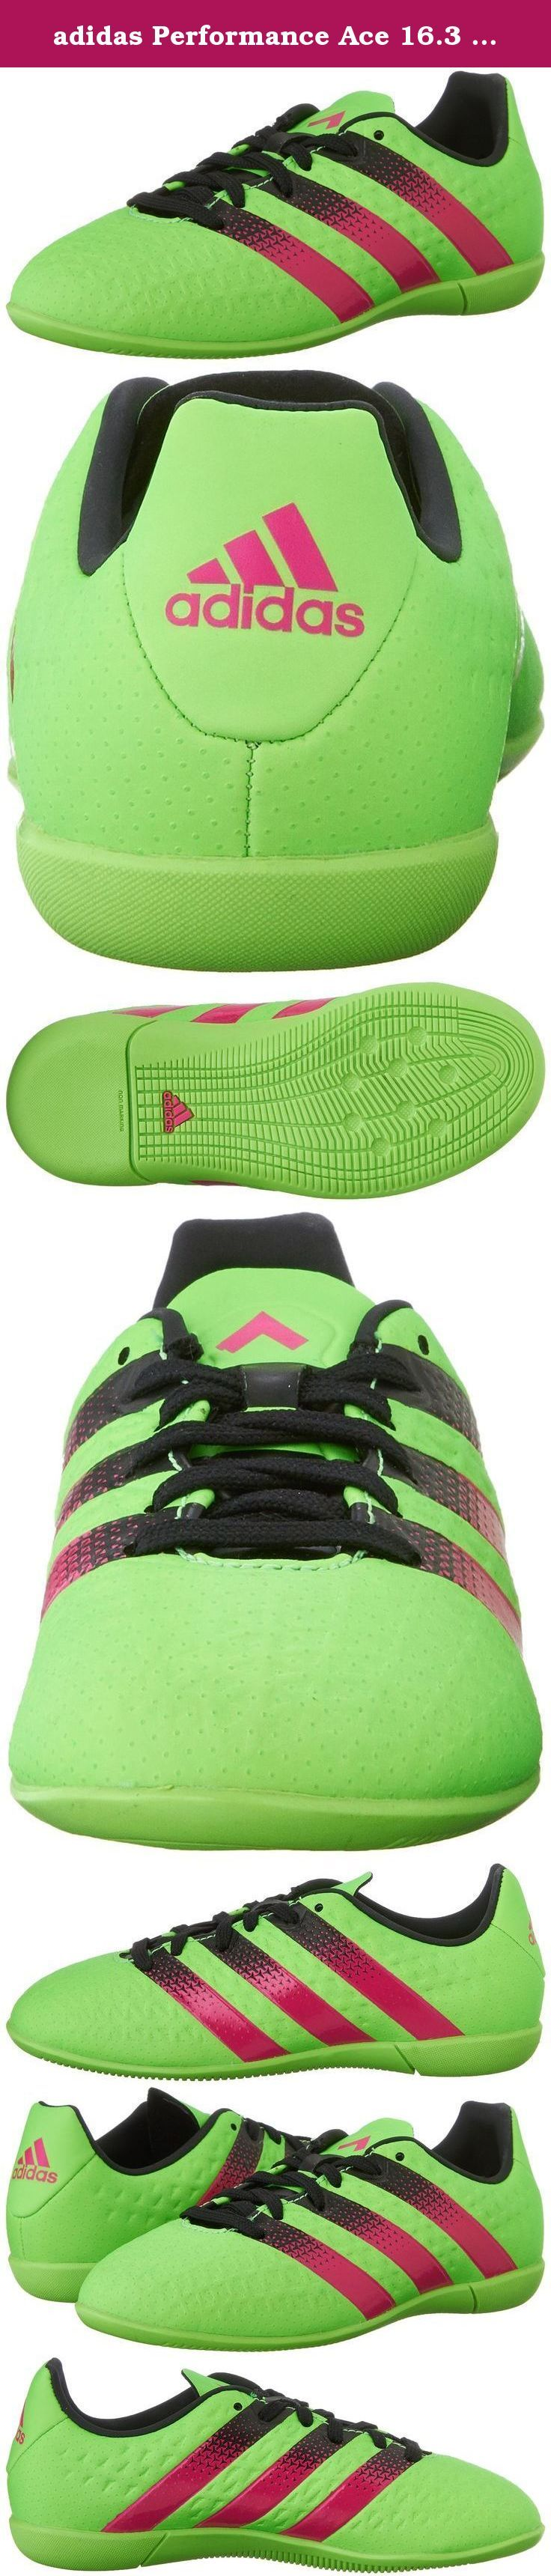 adidas Performance Ace 16.3 IN J Soccer Shoe (Little Kid/Big Kid),Green/Shock Pink/Black,4 M US Big Kid. Kids Soccer Shoe.